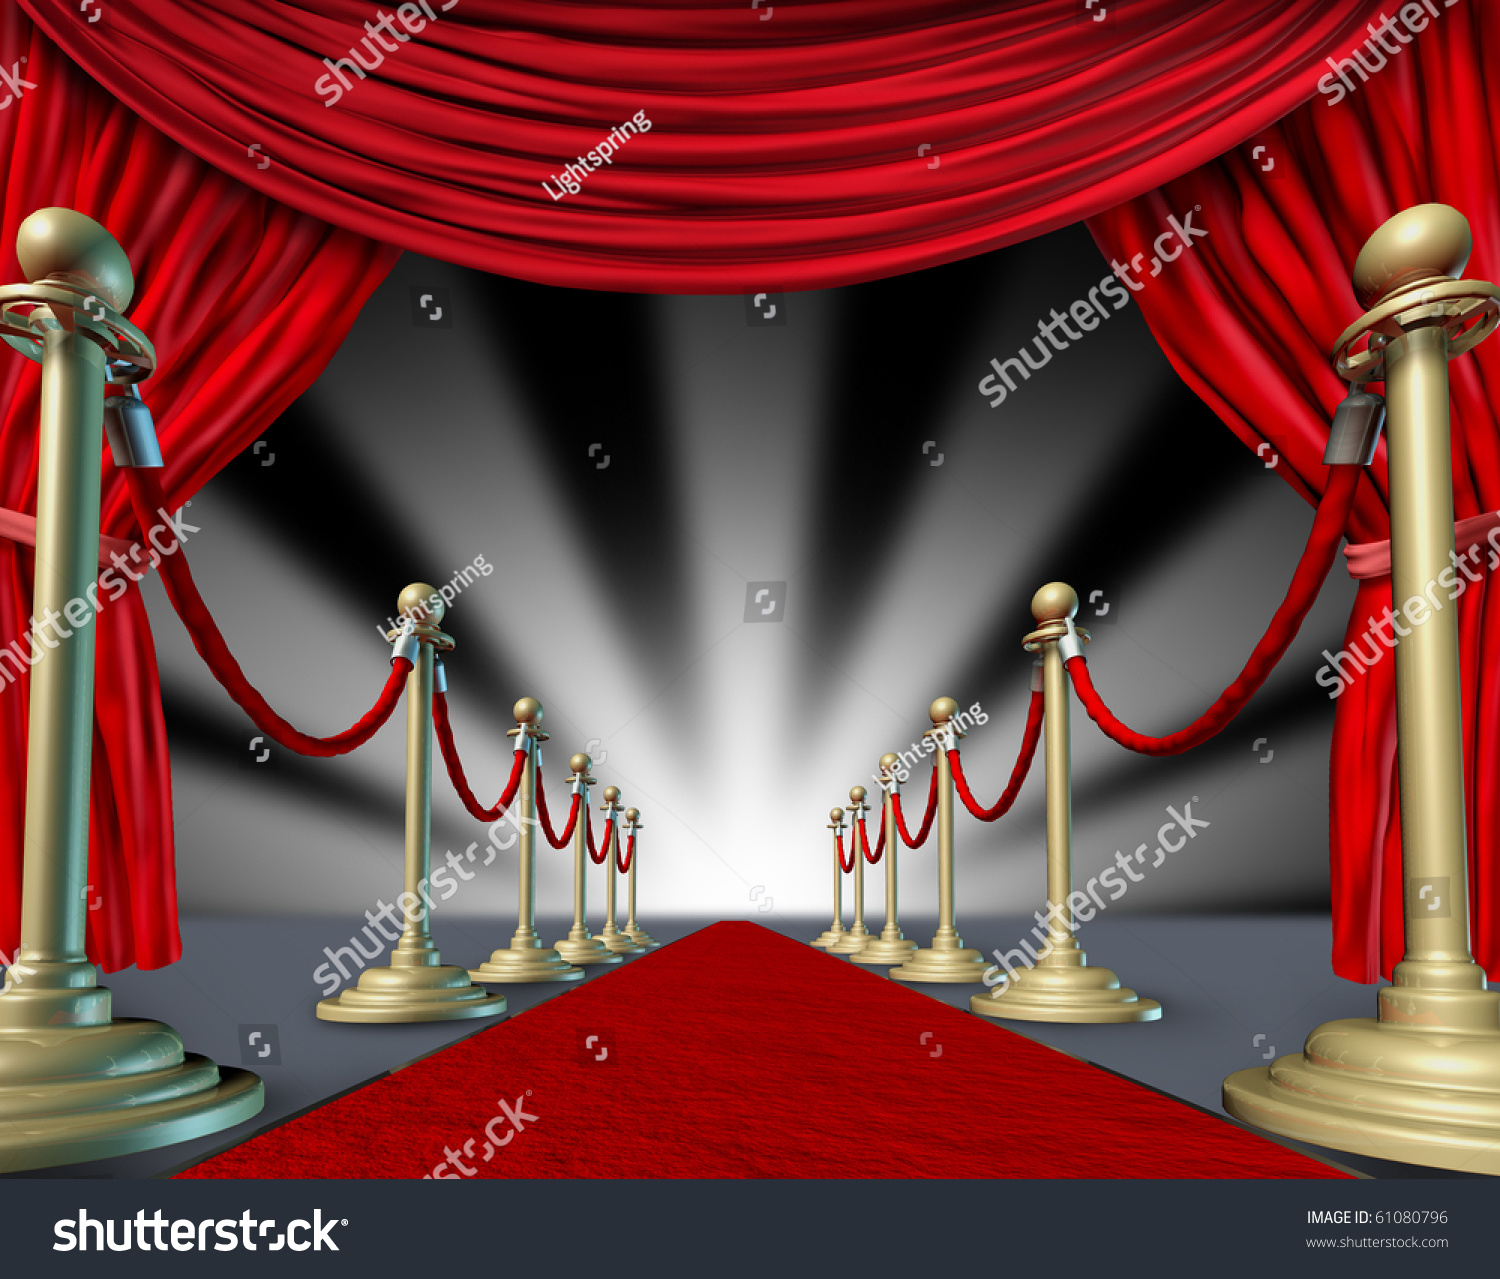 Red Carpet Curtains Hollywood Premier Grand Opening Movie Star Stock ...